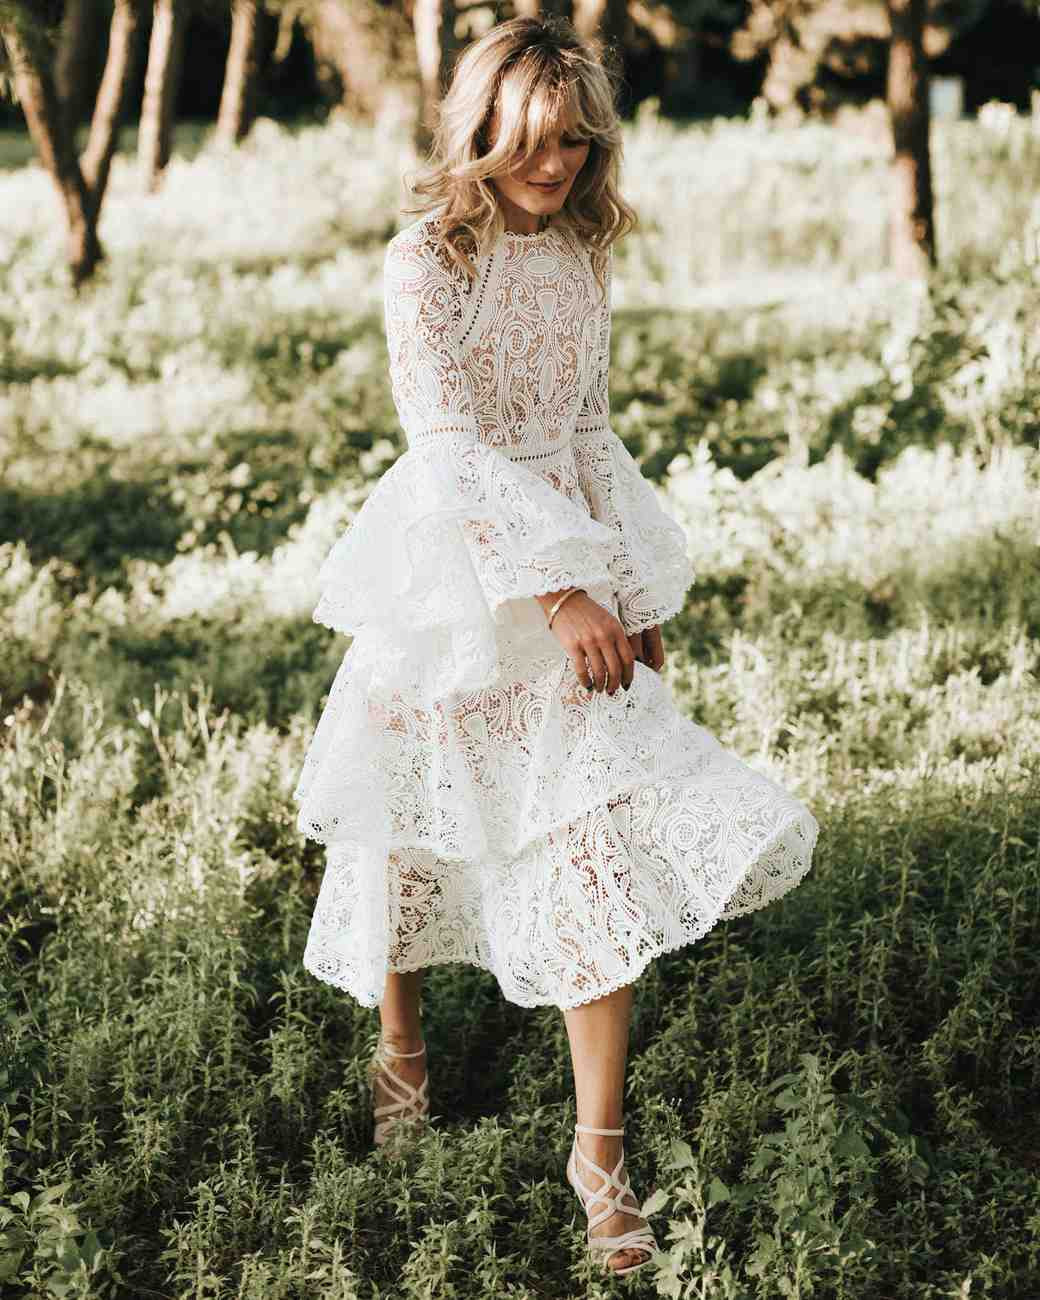 Casual Wedding Themes  25 Casual Wedding Ideas for Your Low Key Big Day